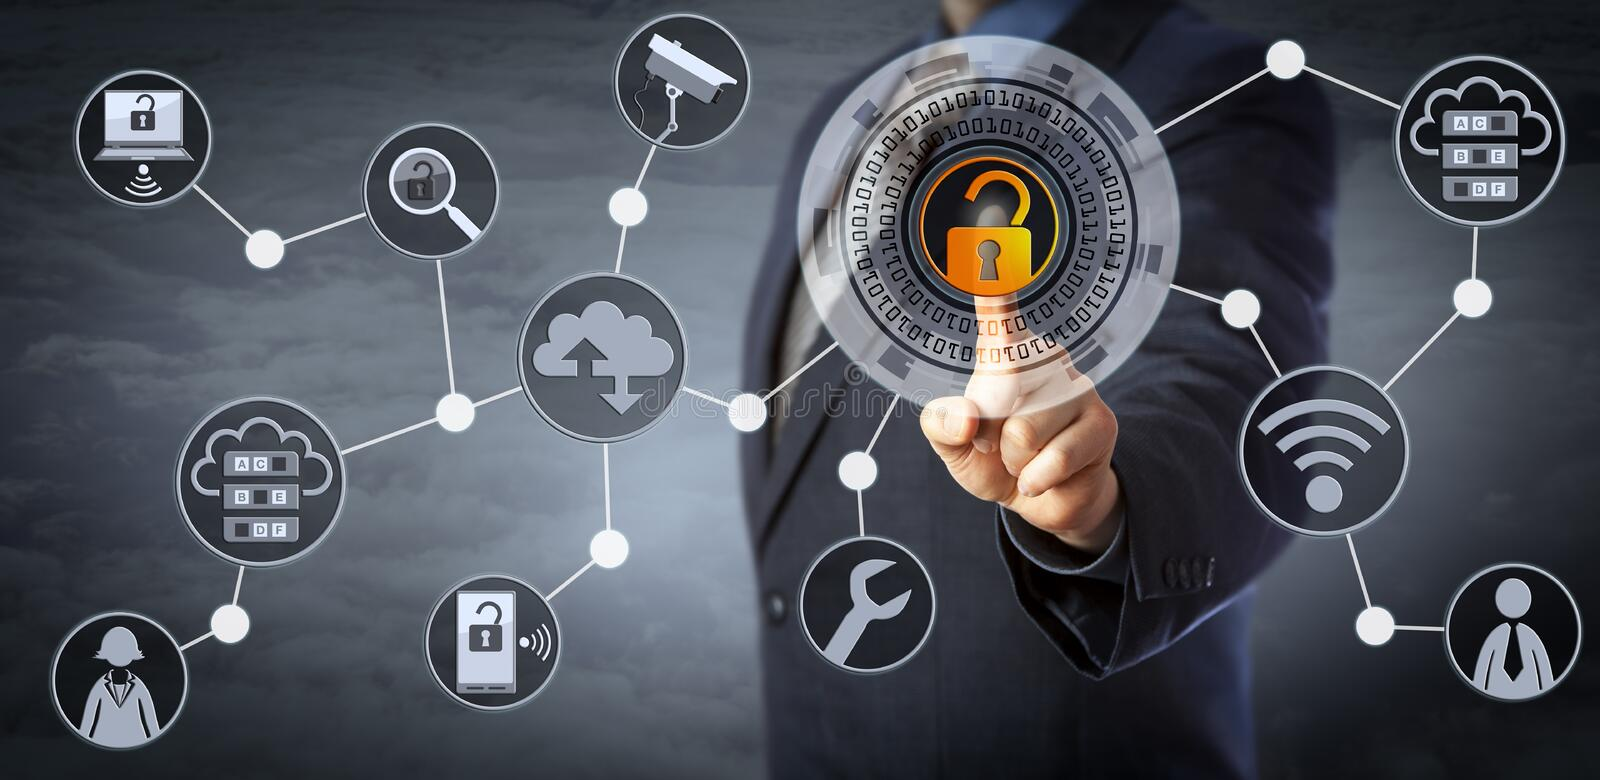 Blue Chip Manager Unlocking Access Control. Blue chip manager is unlocking a virtual locking mechanism to access shared cloud resources. Internet concept for